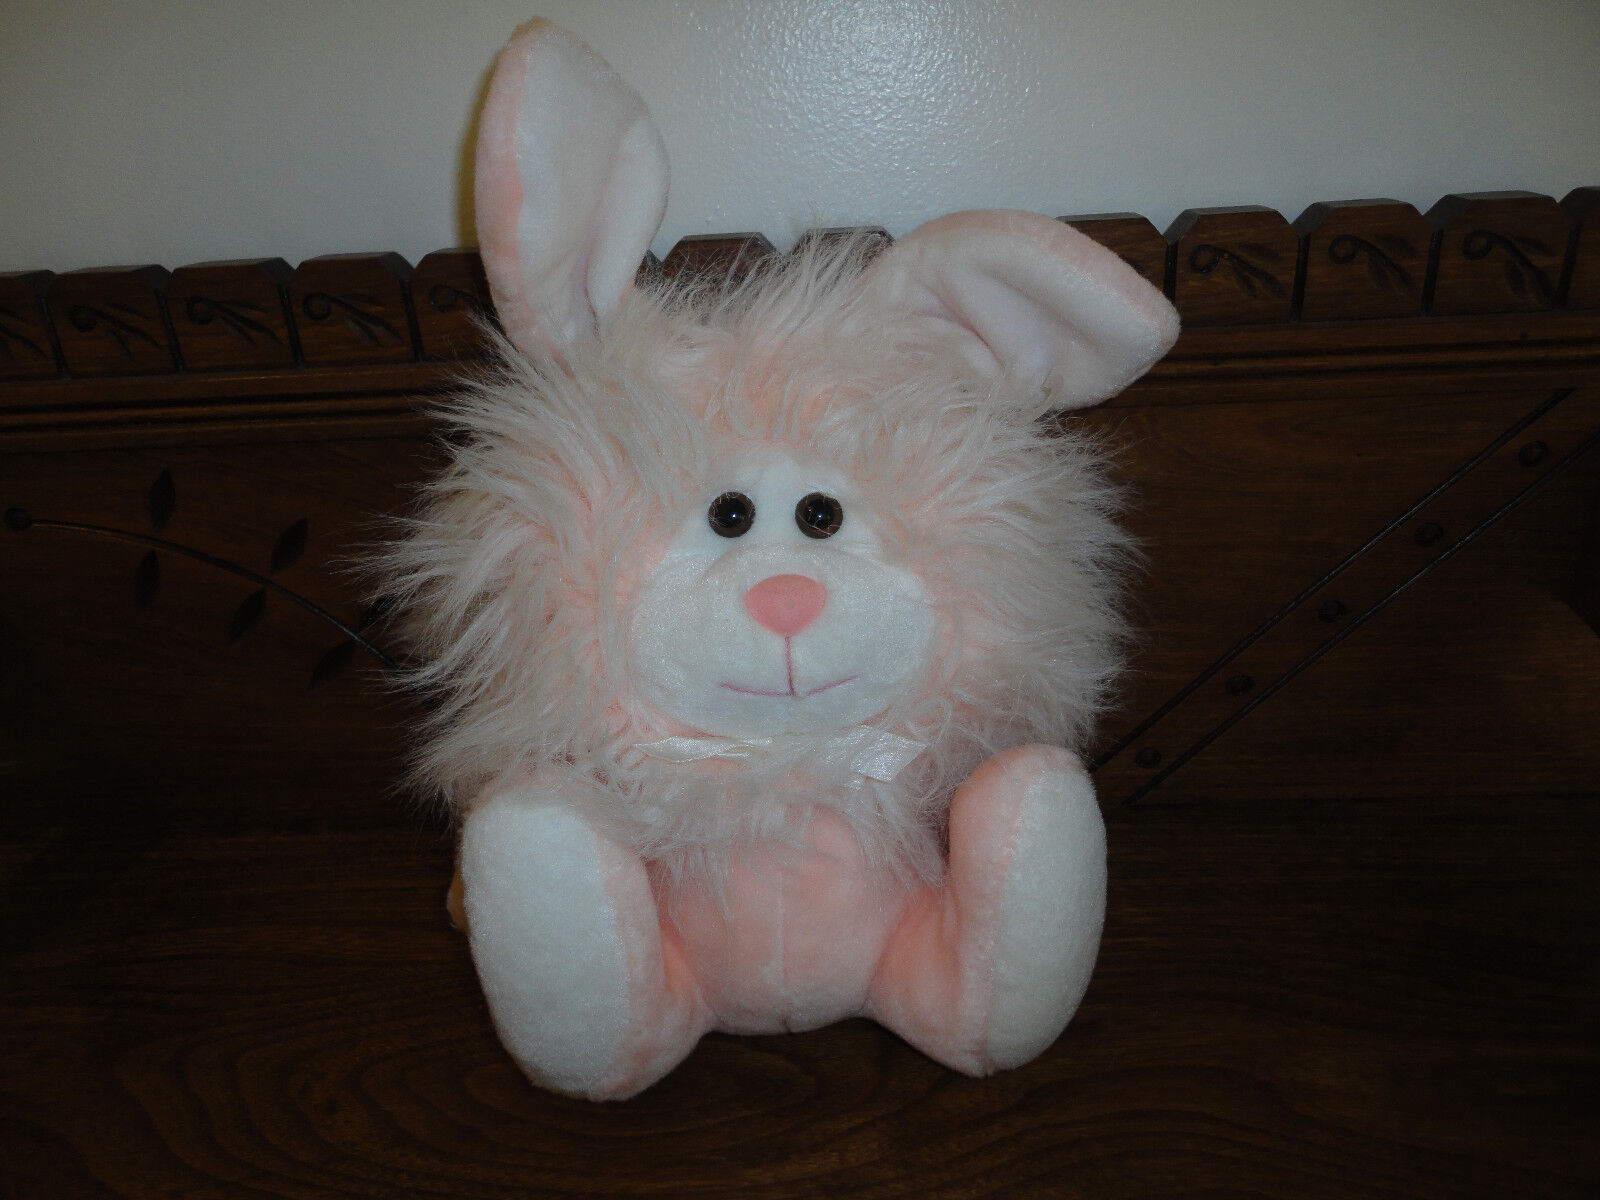 24K Mighty Star CHET Bunny Rabbit Peach Plush Toy 8 Inch 7464 Vintage 1991